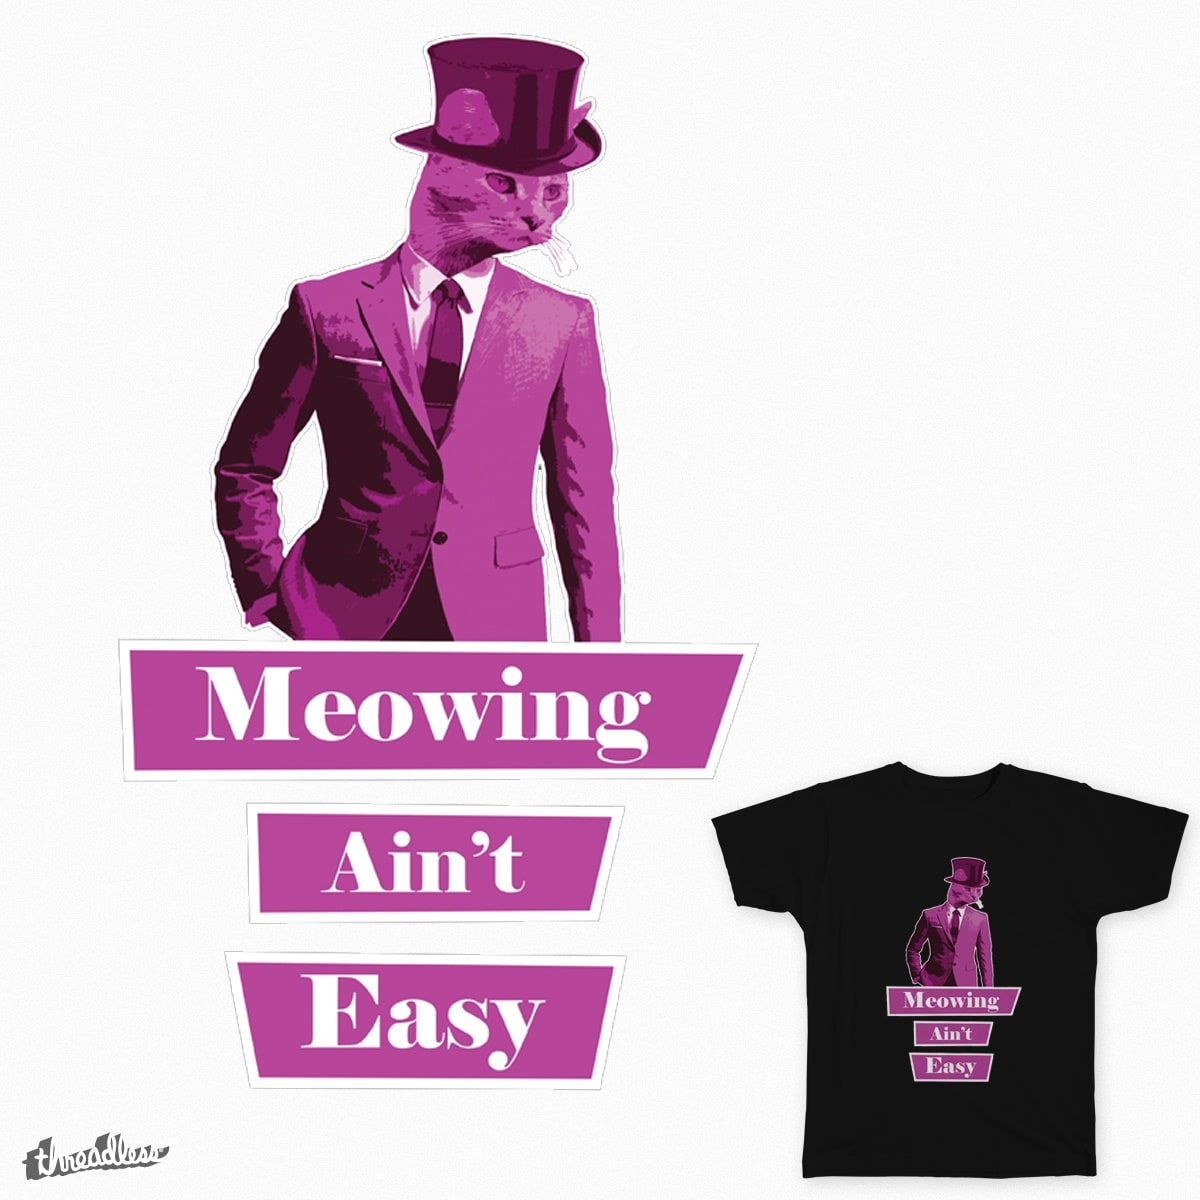 Meowing Ain't Easy by MattyBizzle on Threadless